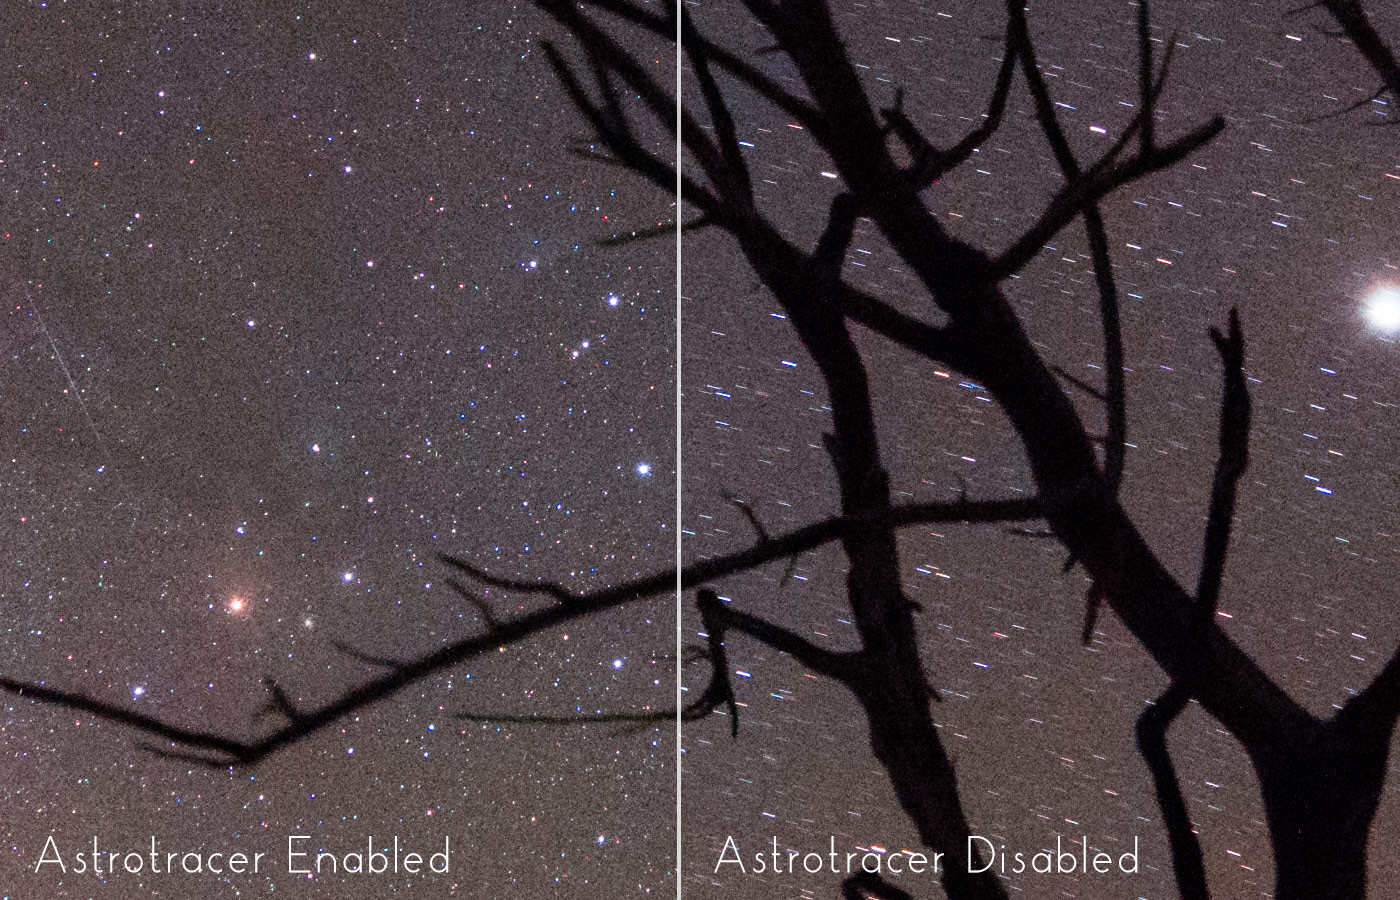 Pentax K-1 Mark II Astrotracer 100 percent crop comparison